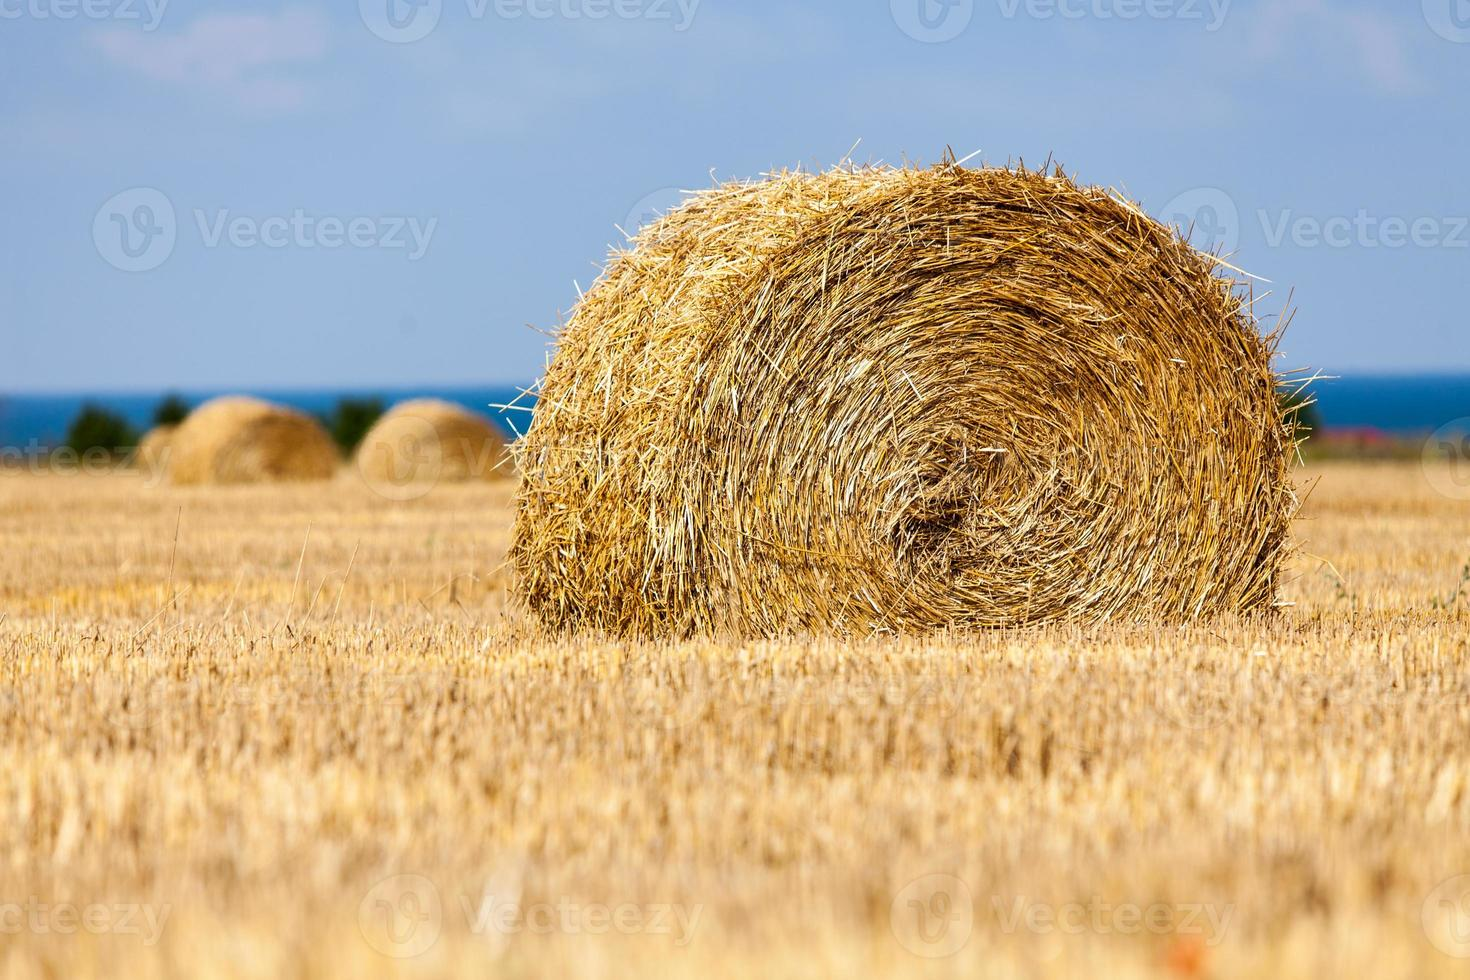 Harvested hilly wheat field with straw bale photo